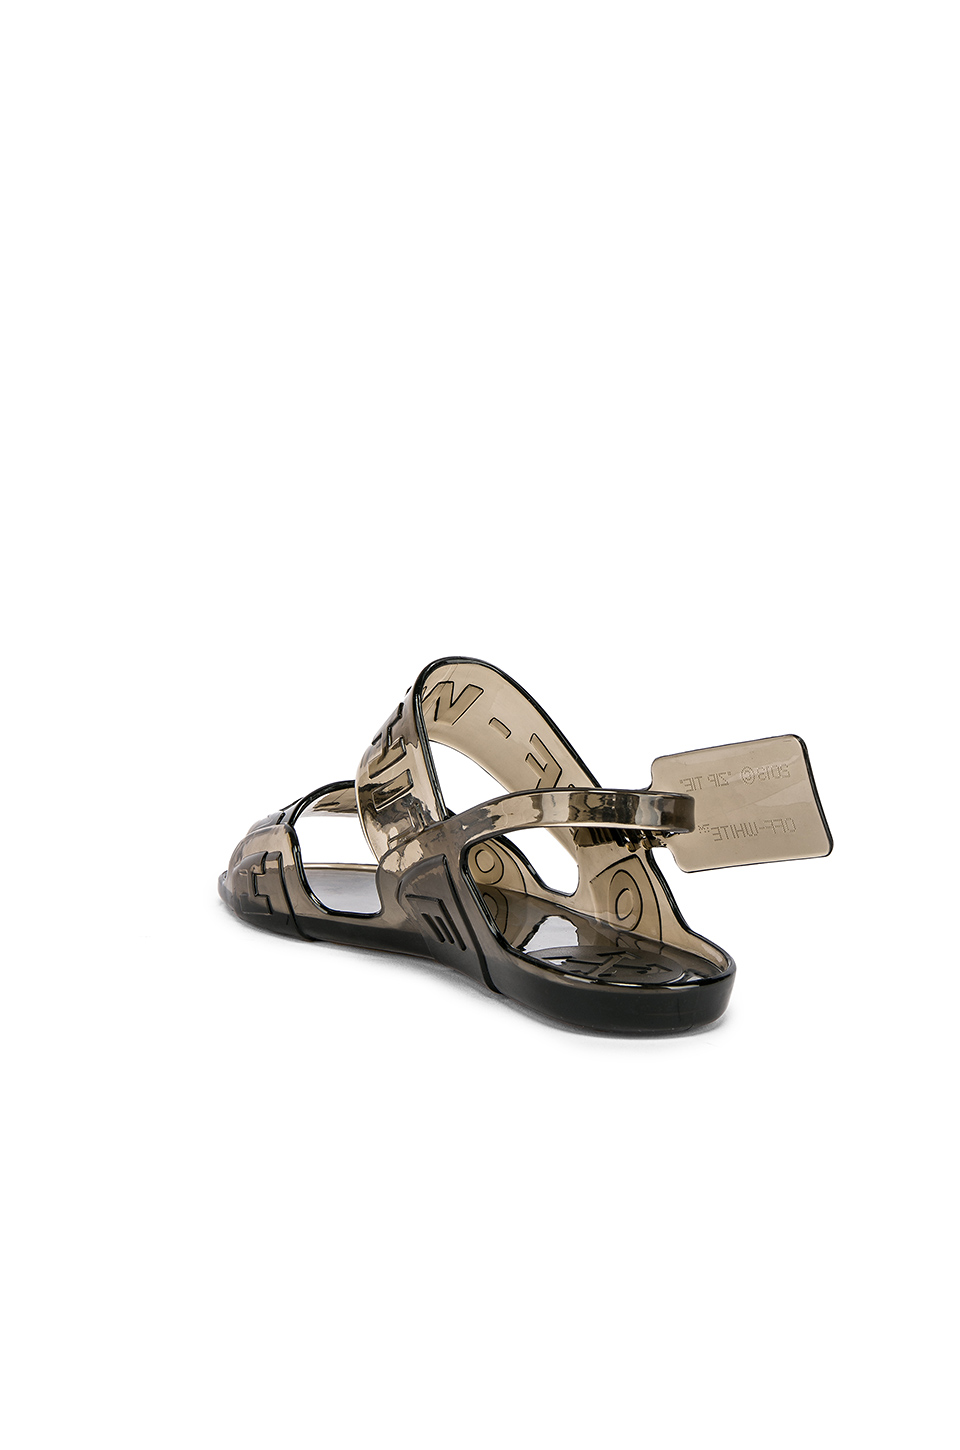 1fcea0119b76 Buy Original OFF-WHITE Zip Tie Jelly Sandal at Indonesia